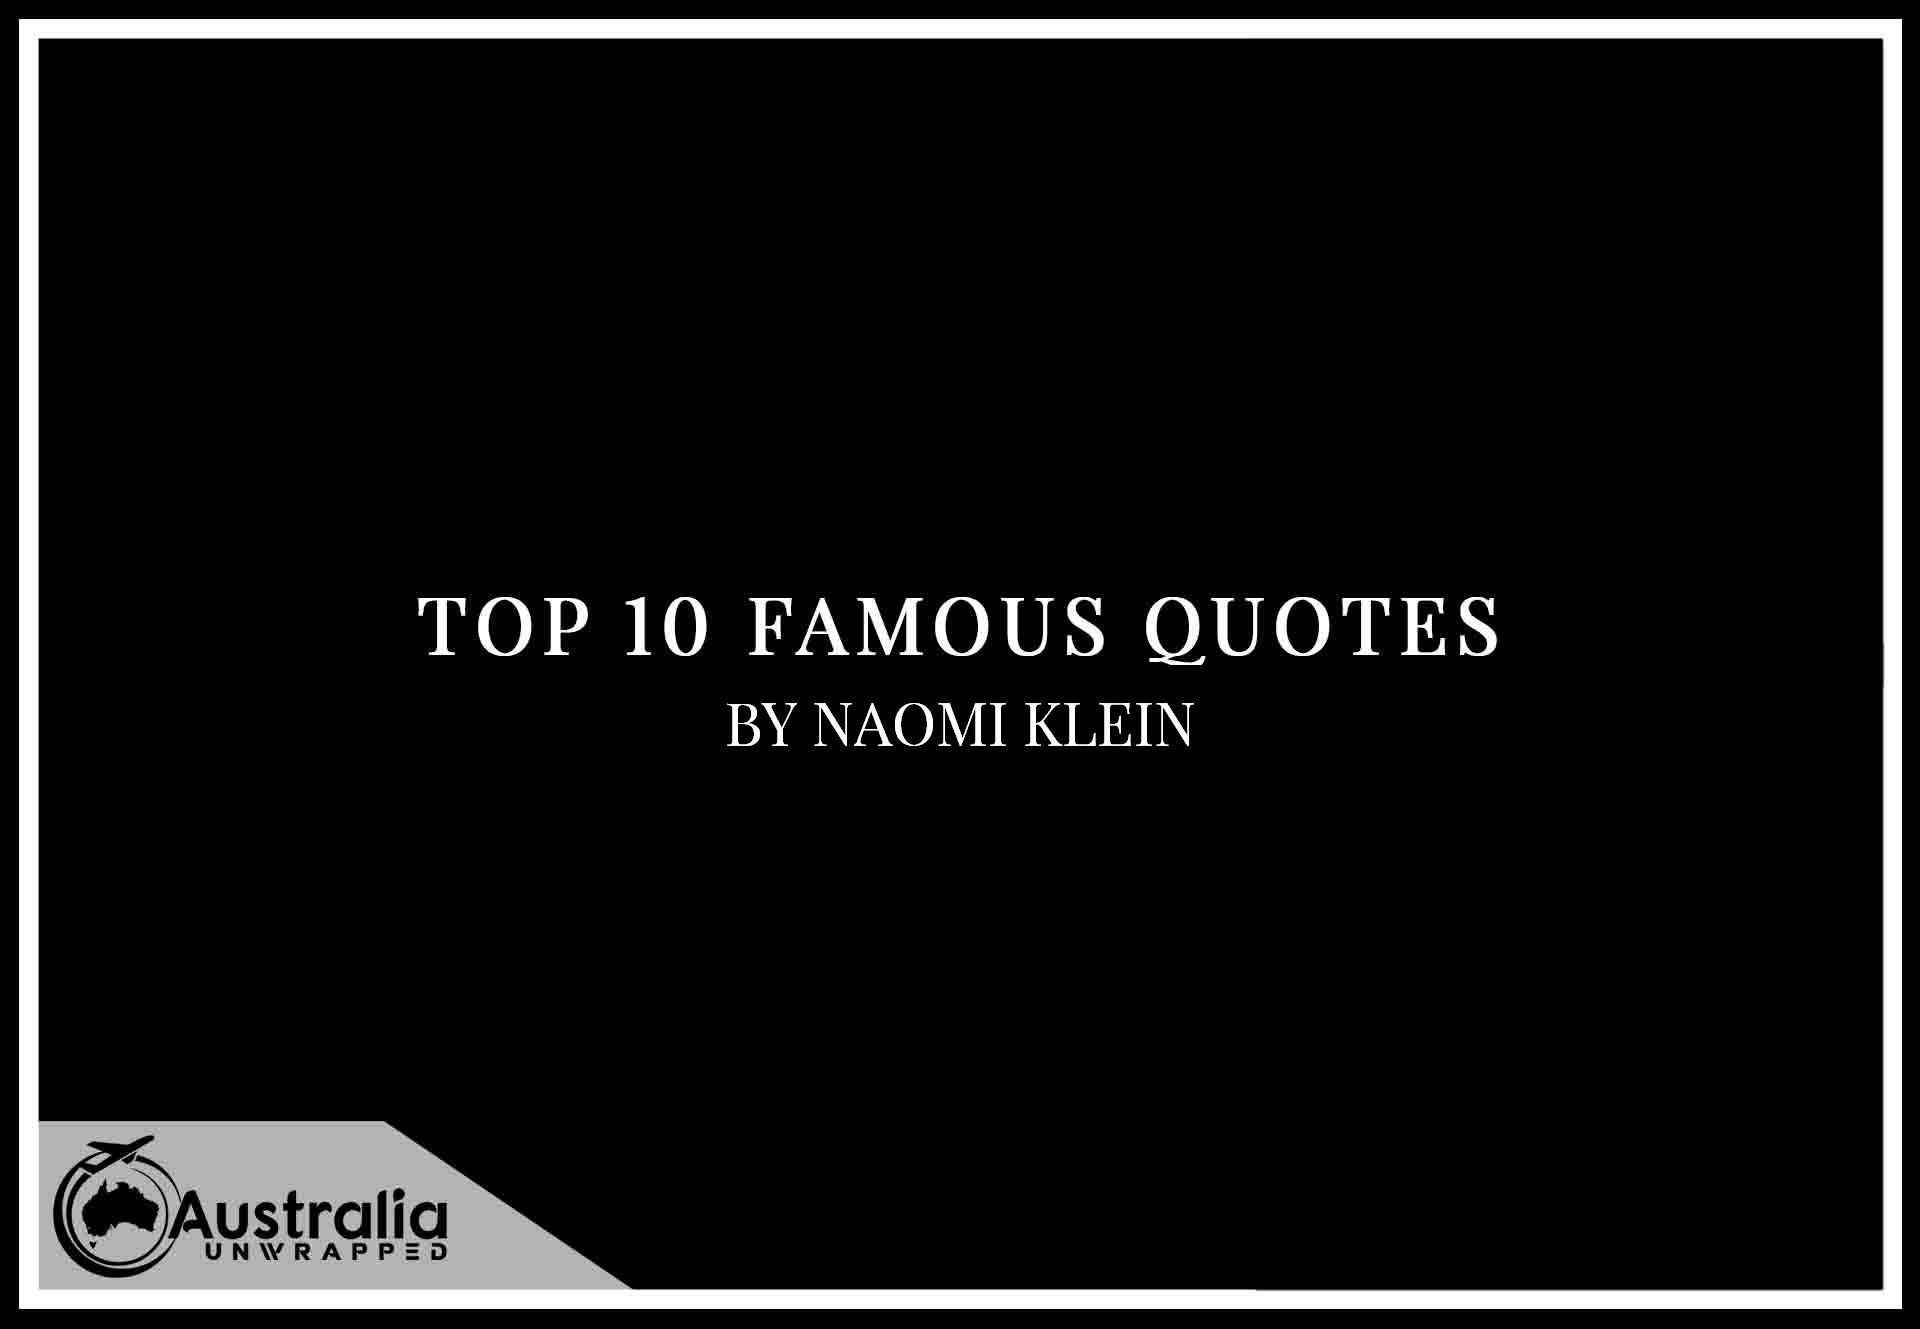 Top 10 Famous Quotes by Author Naomi Klein